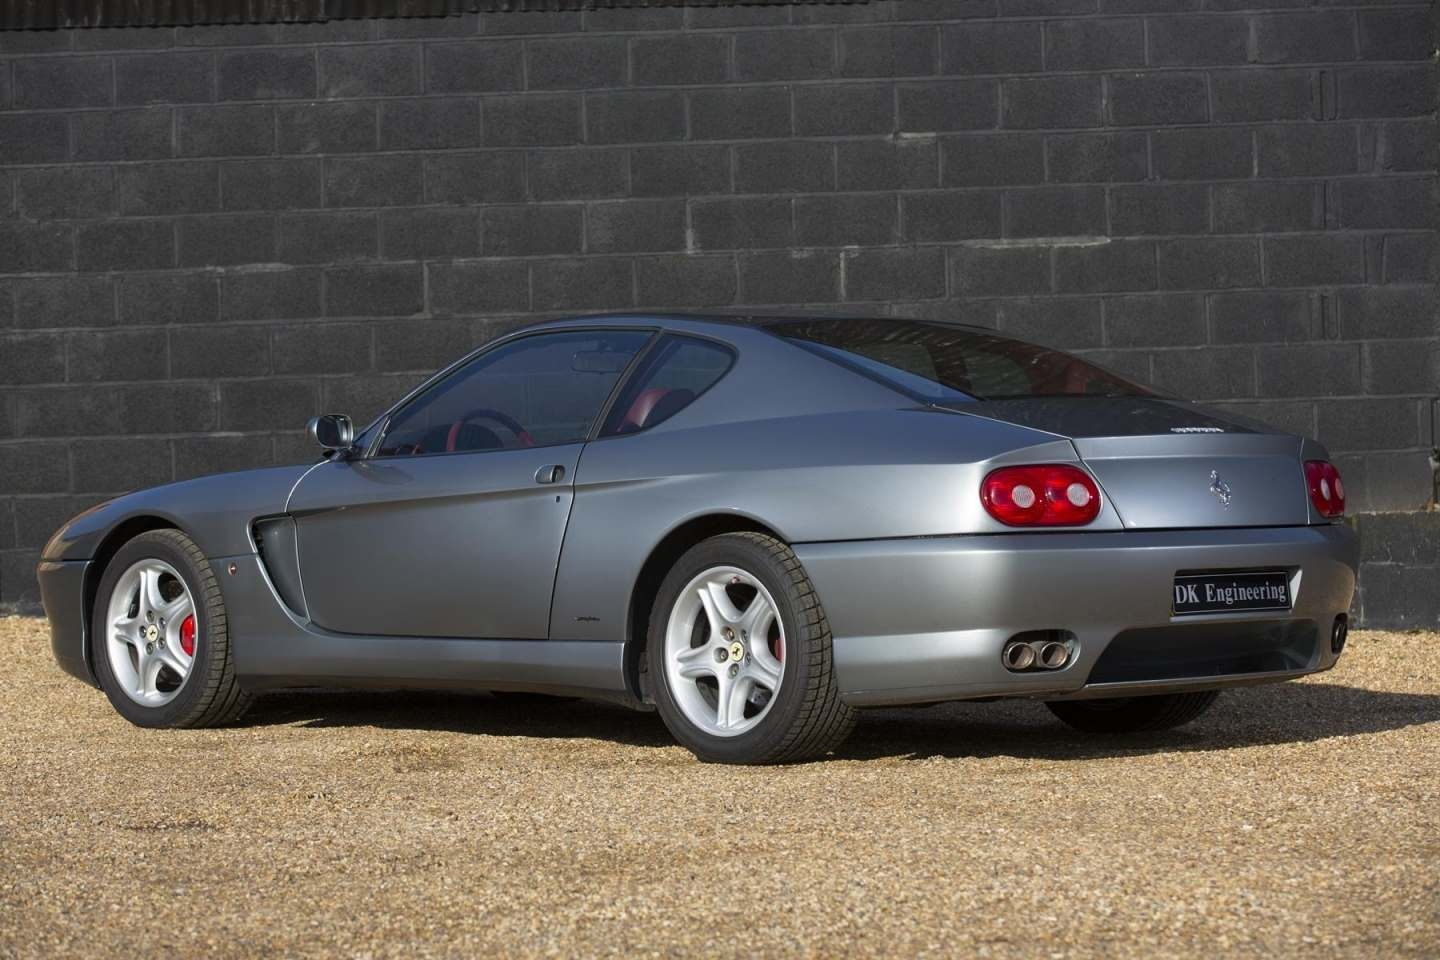 ferrari 456 gt for sale vehicle sales dk engineering. Black Bedroom Furniture Sets. Home Design Ideas